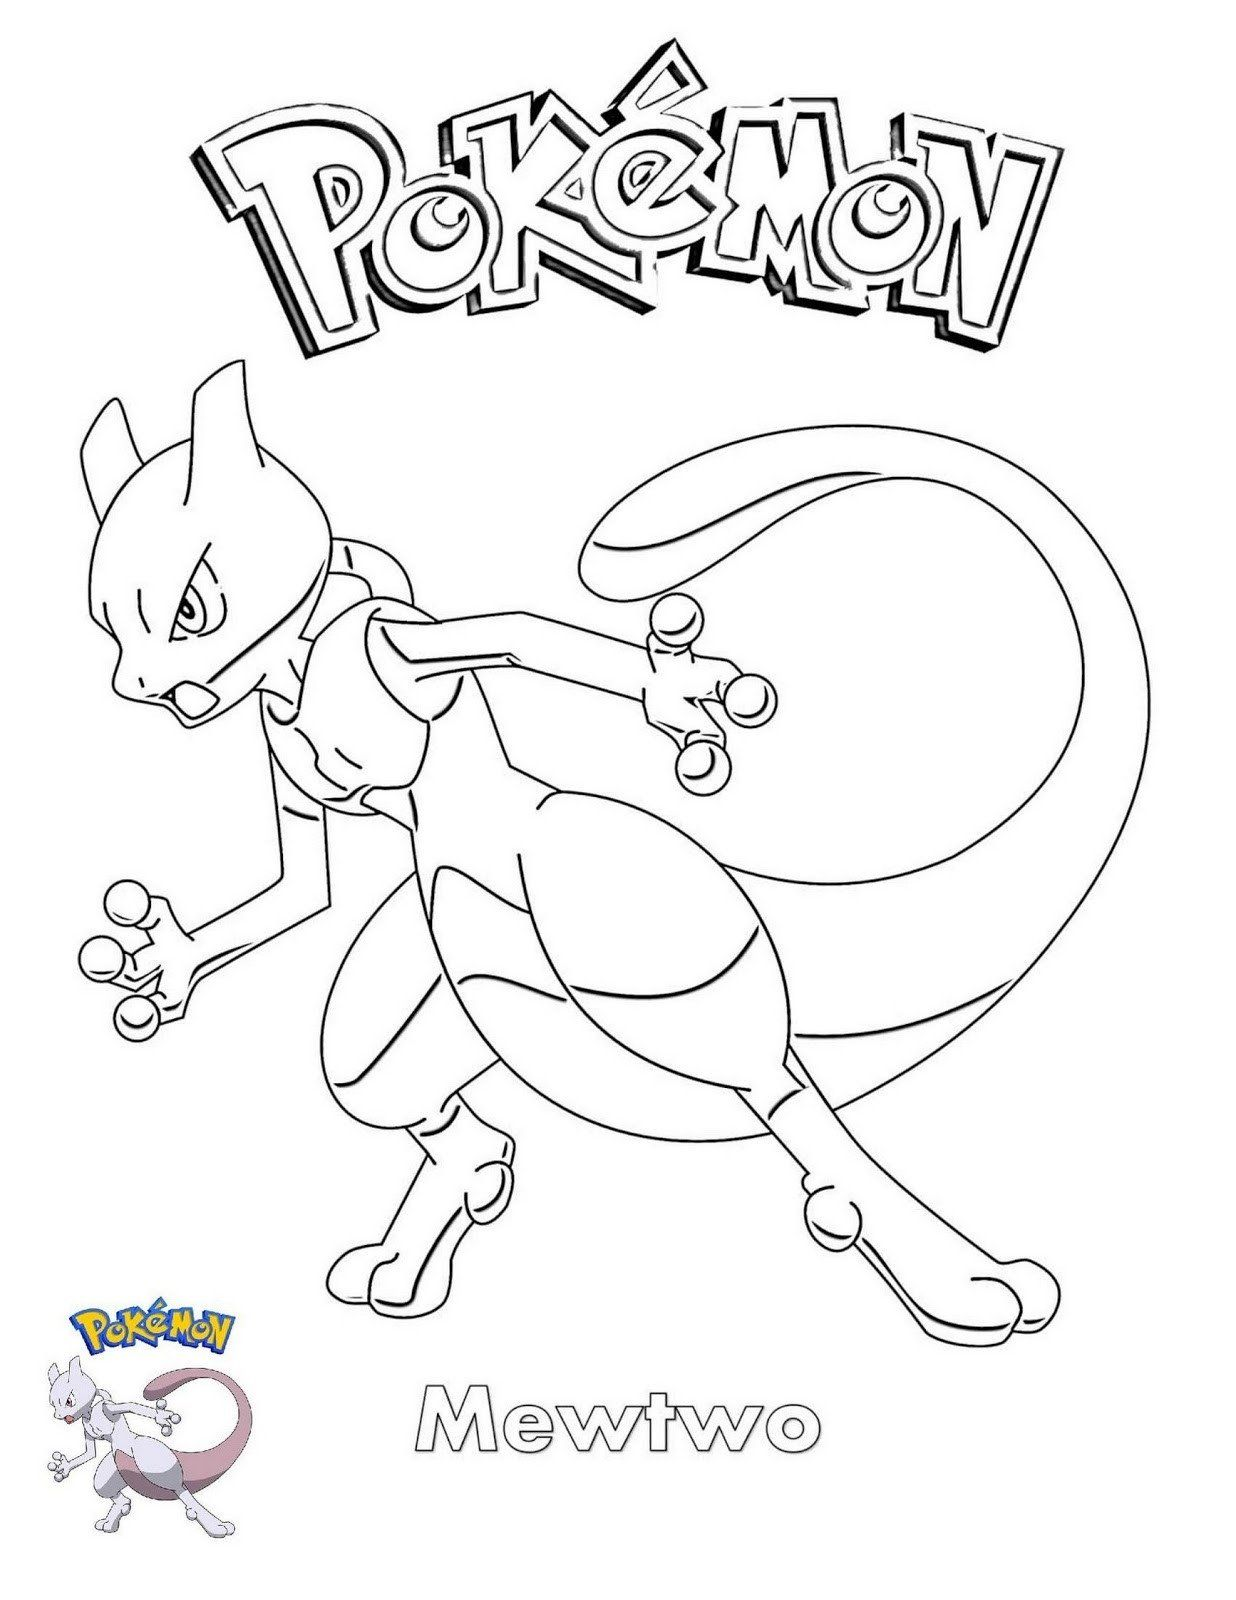 Mega Mewtwo Y Coloring Page Pokemon Coloring Pages Pokemon Coloring Pokemon Coloring Sheets